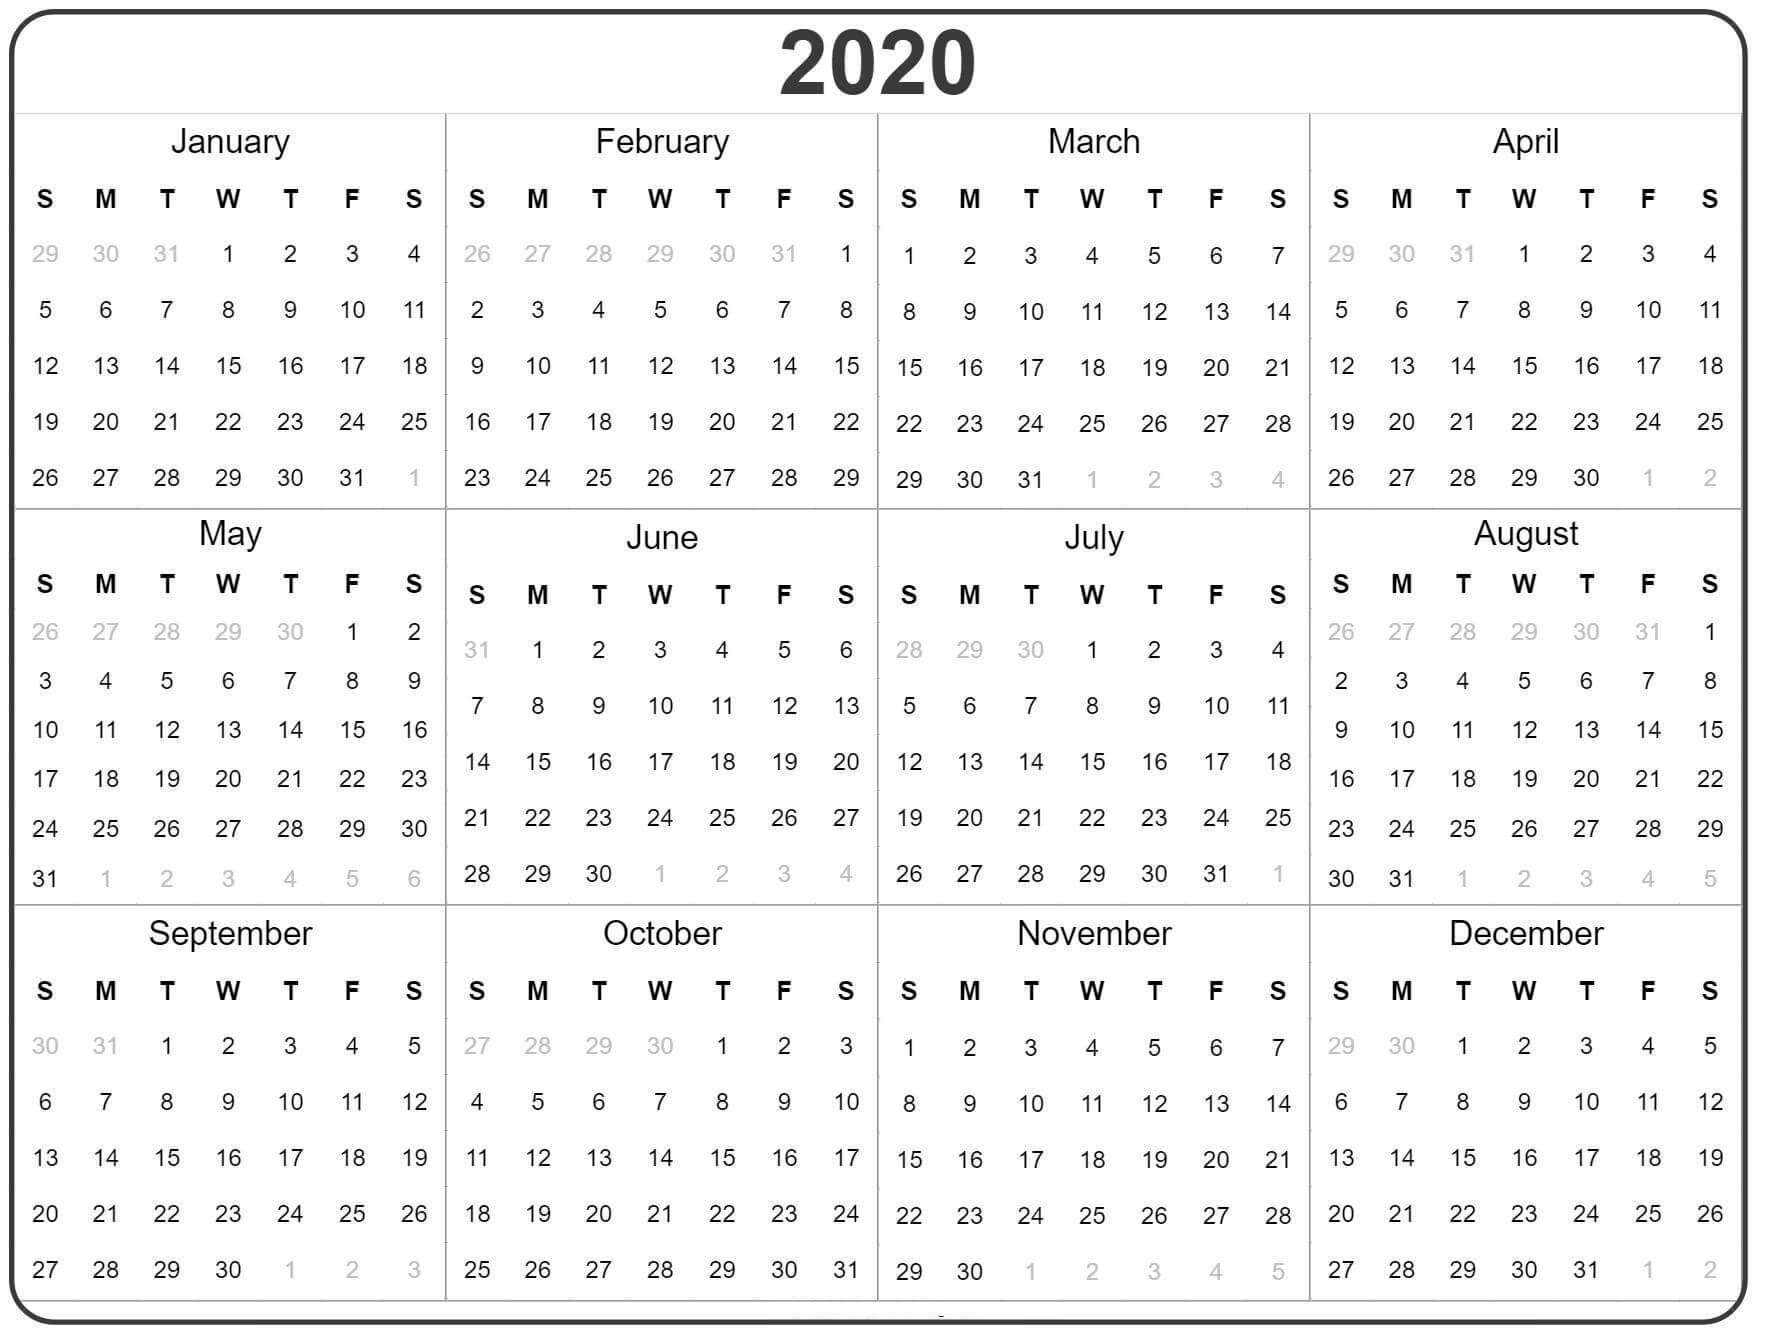 Free Yearly Calendar 2020 With Notes - 2019 Calendars For in Free 2020 Year At A Glance Calendar